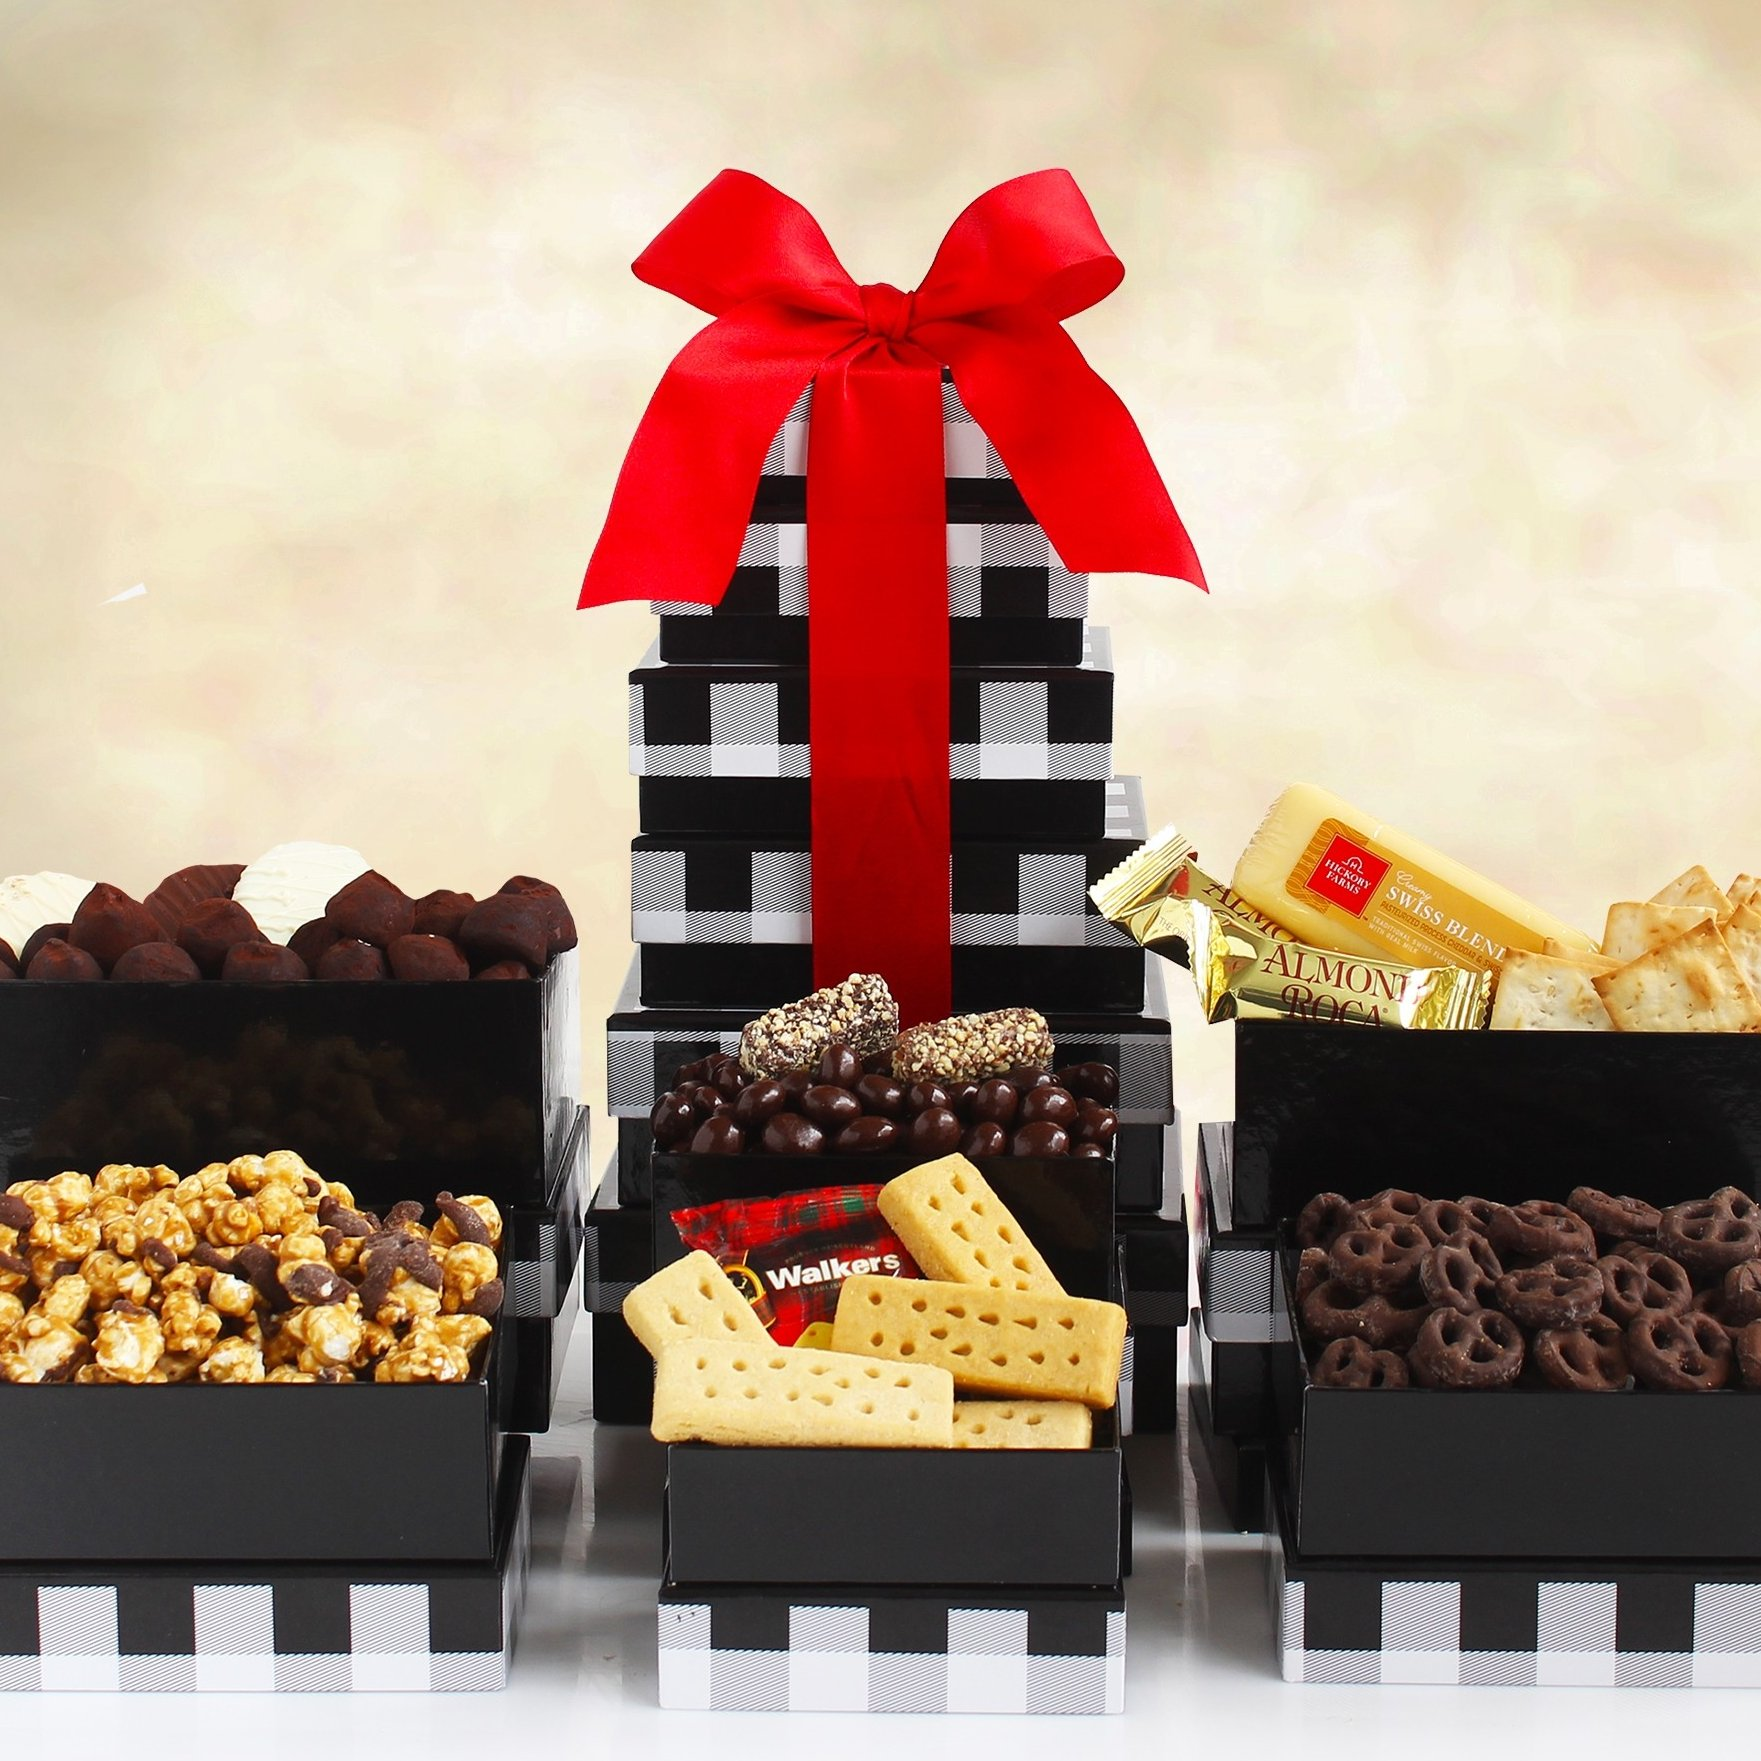 Image 0 of Holiday Elegance: Festive Gift Tower